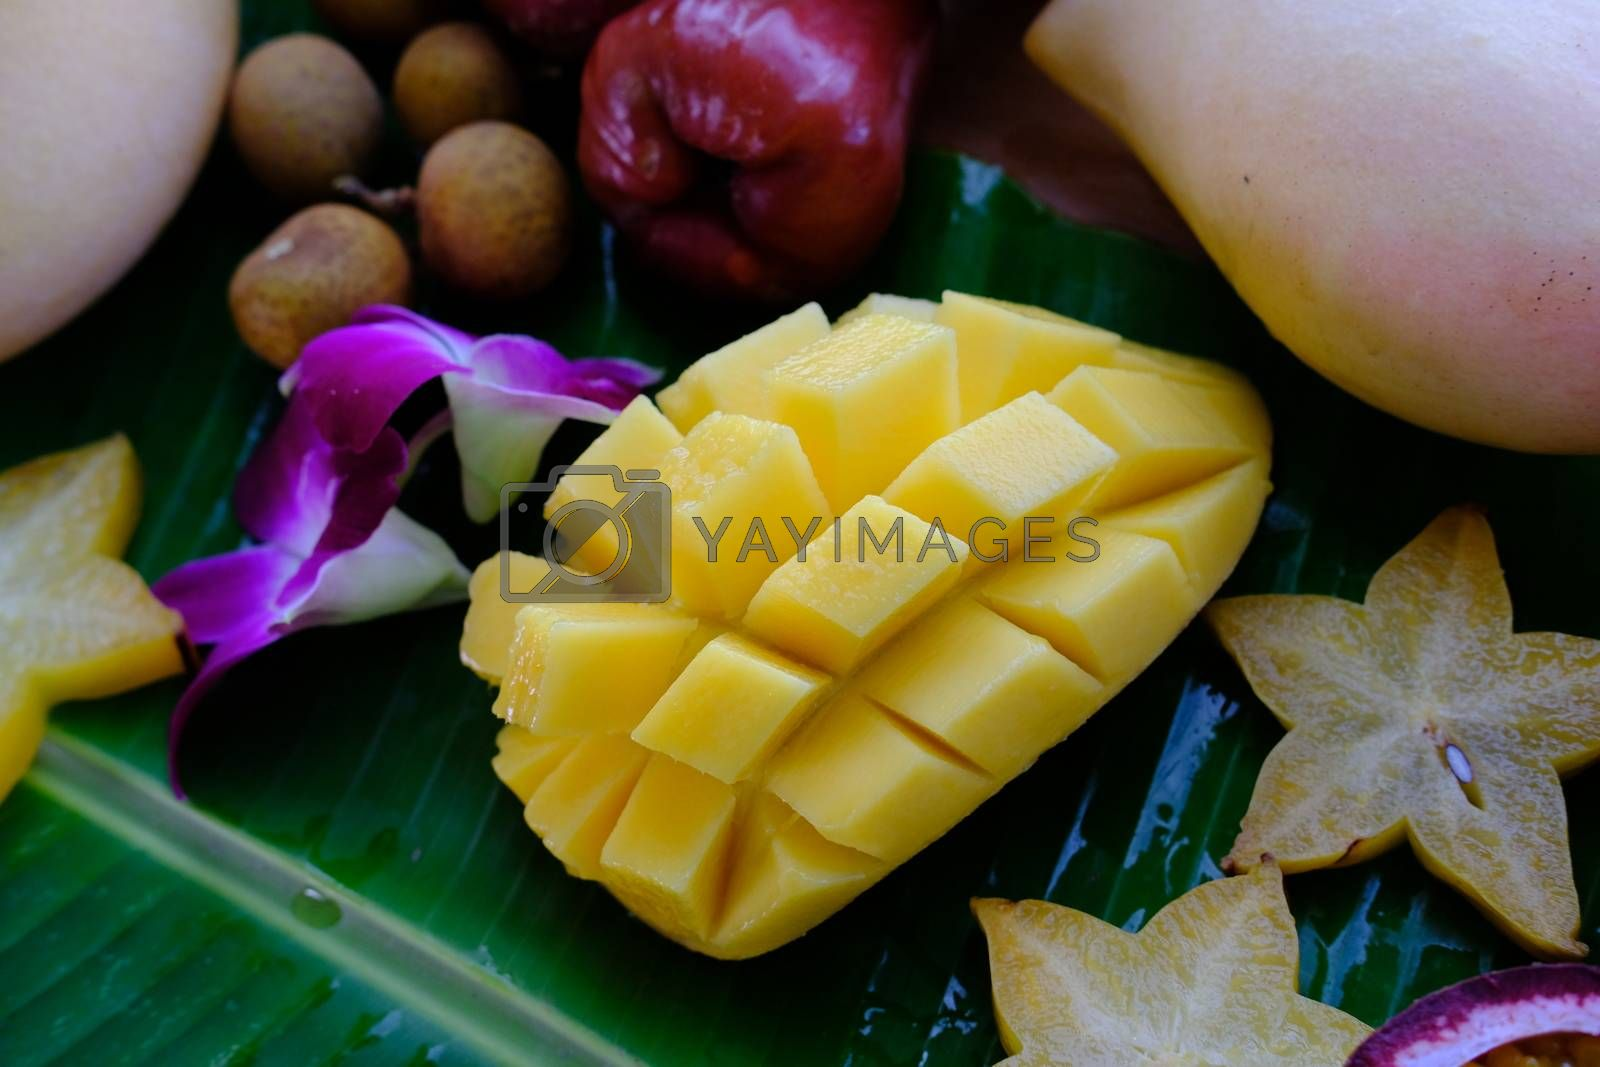 Delicious Fresh exotic fruits slices of carambola, mango, longan and pink apple on banana leaf.